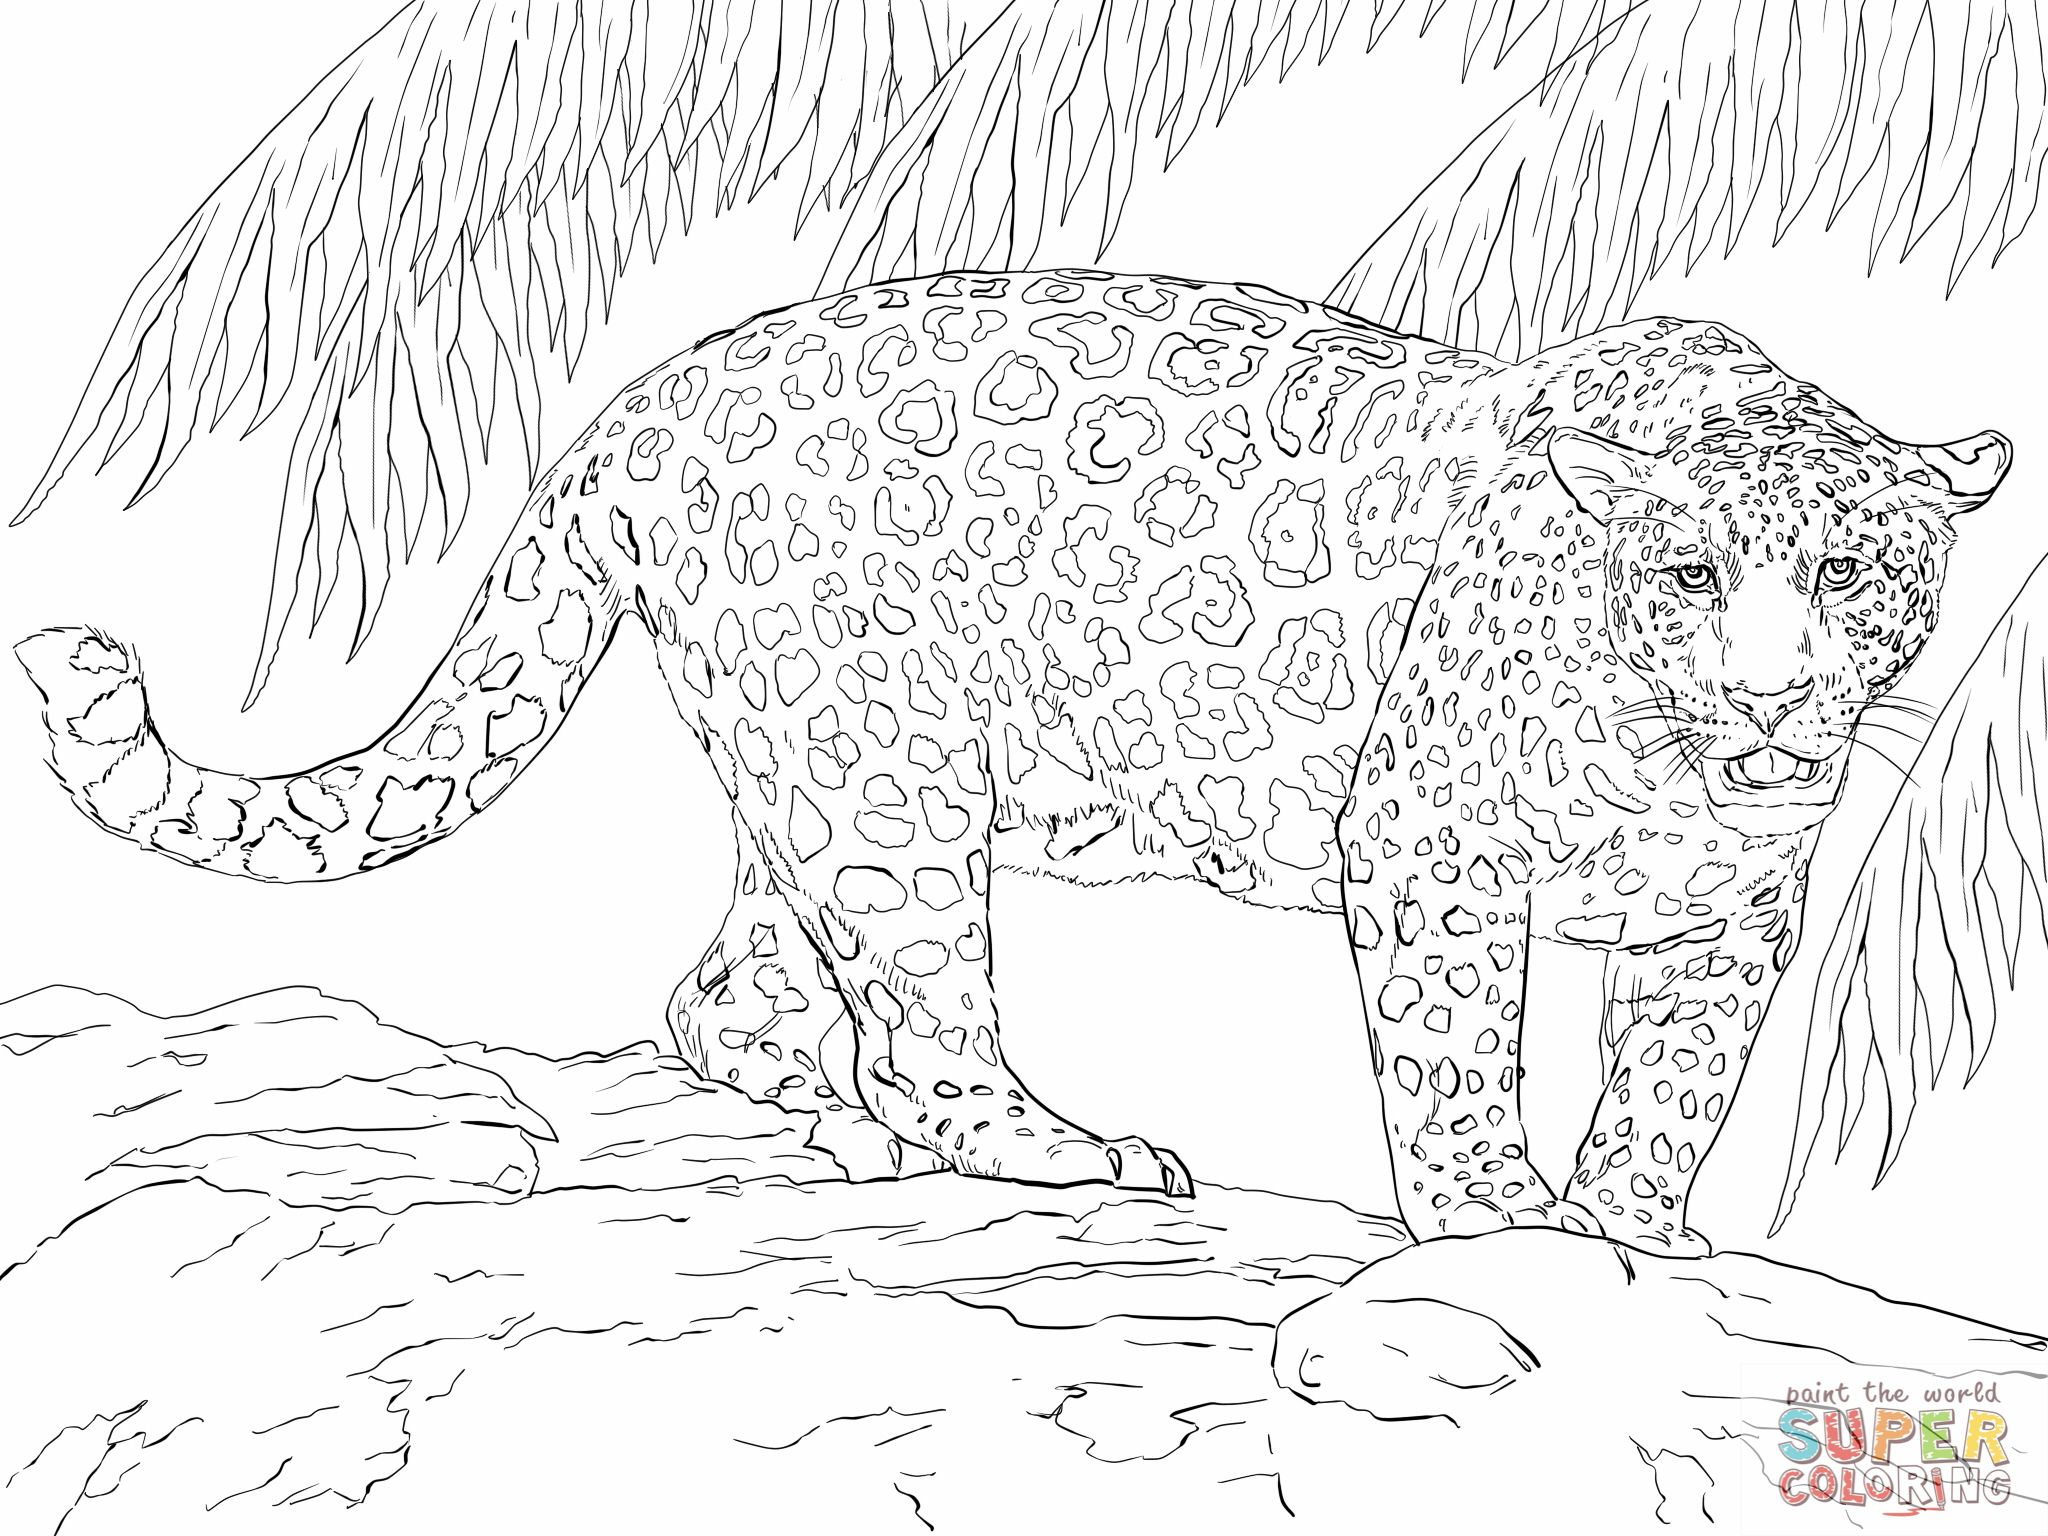 Great Jaguar Coloring Online Super Coloring Animal Coloring Pages Super Coloring Pages Coloring Pages